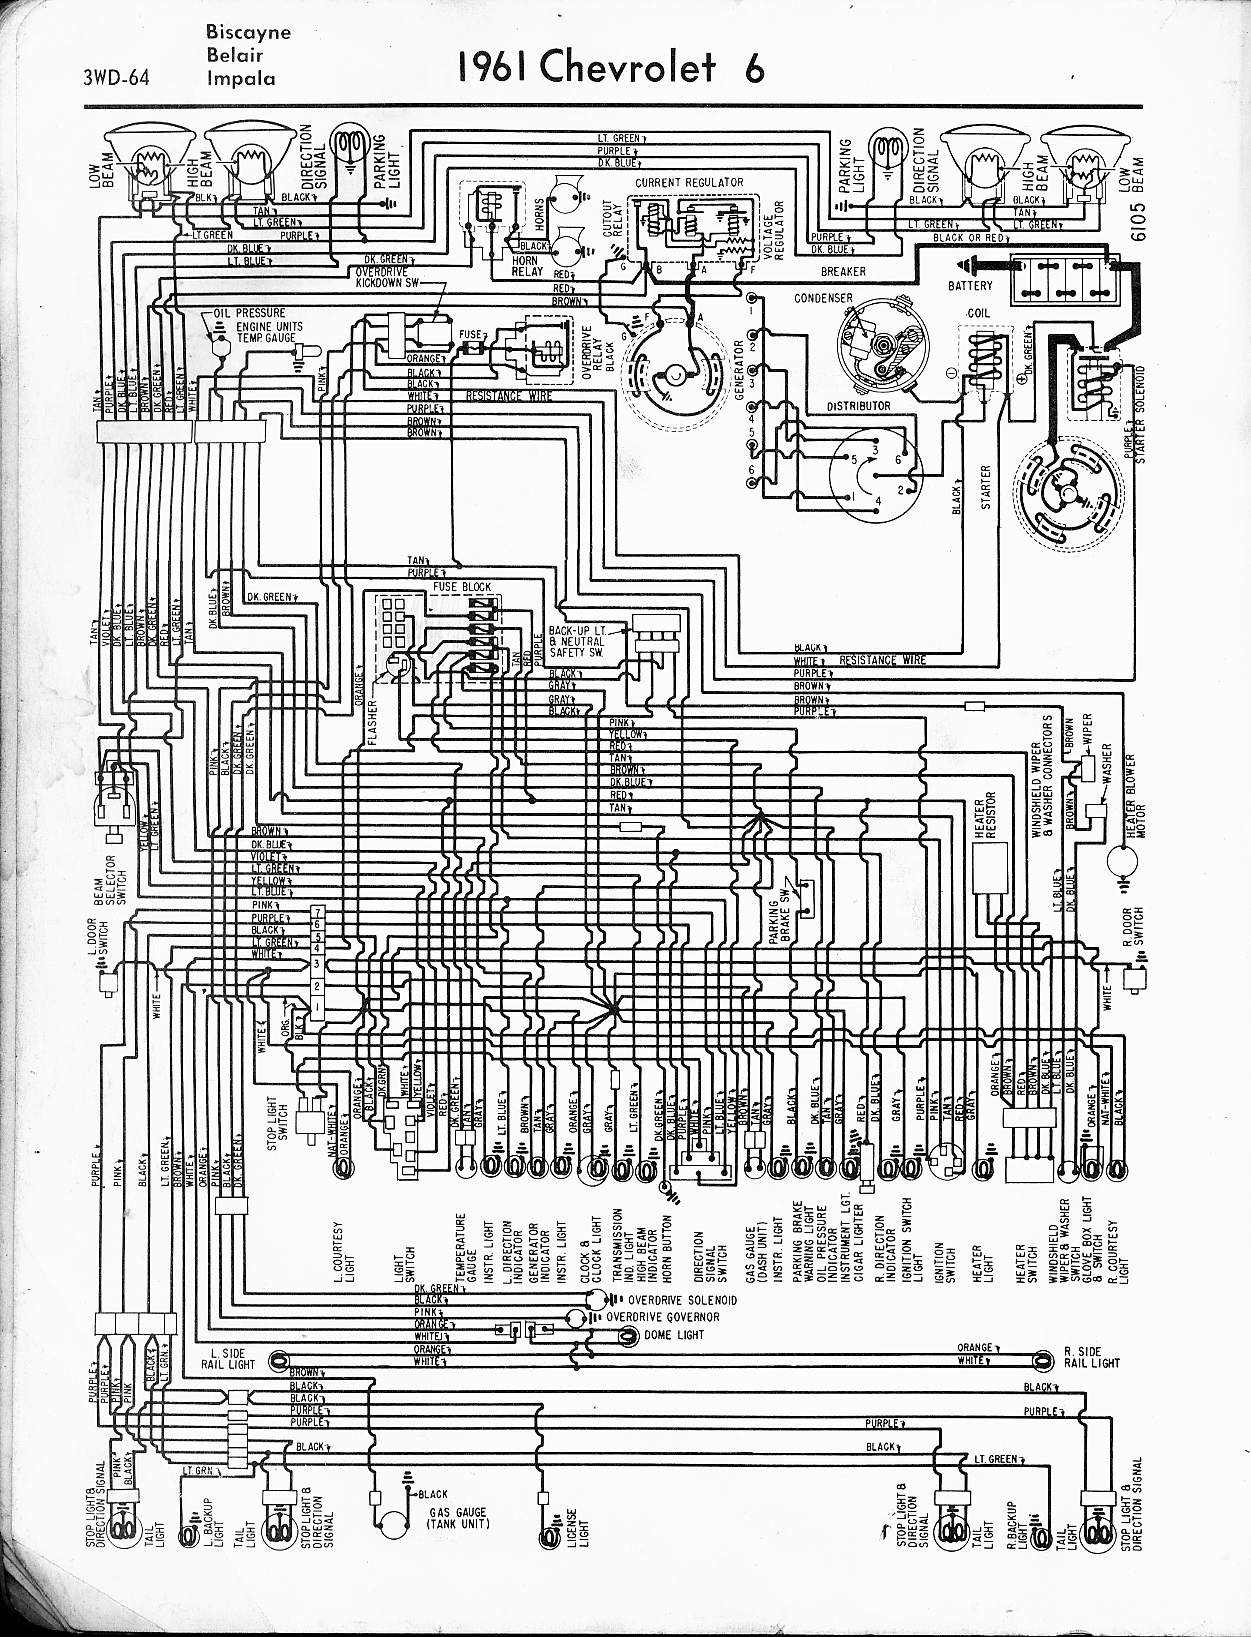 57 Chevy Ez Wiring Diagram | Wiring Liry on 65 ford mustang wiring diagram, 65 vw bug wiring diagram, 1965 chevy truck wiring diagram, 06 impala starter wiring diagram, 65 ford ranchero wiring diagram, 65 buick skylark wiring diagram, 65 buick electra wiring diagram, 1965 chevy impala wiring diagram, 1961 impala wiring diagram, 65 pontiac gto wiring diagram, 65 lincoln continental wiring diagram, 65 ford thunderbird wiring diagram, 1964 chevy impala wiring diagram, 1962 chevy impala wiring diagram, 62 chevy impala wiring diagram, 65 ford galaxie wiring diagram, 63 chevy impala wiring diagram, 72 chevy impala wiring diagram, 66 chevy impala wiring diagram, 1965 chevy nova wiring diagram,